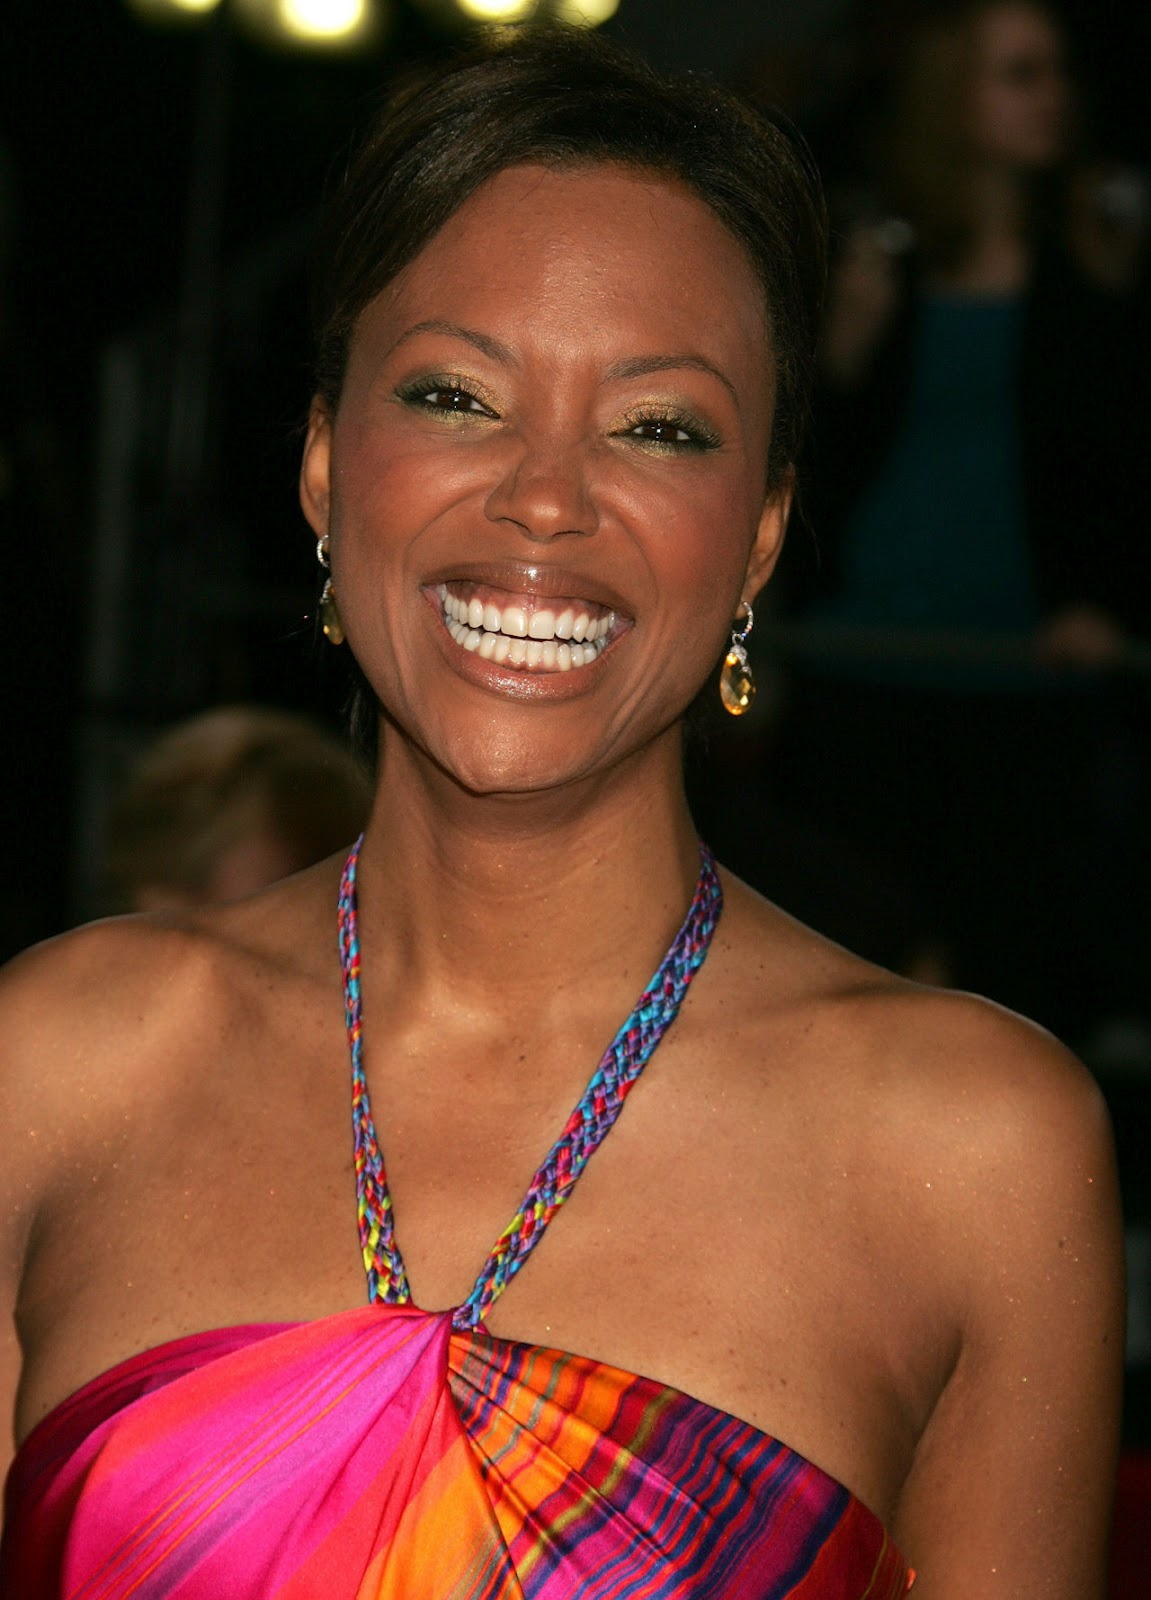 aisha_tyler_rainbow_dress-225.jpg